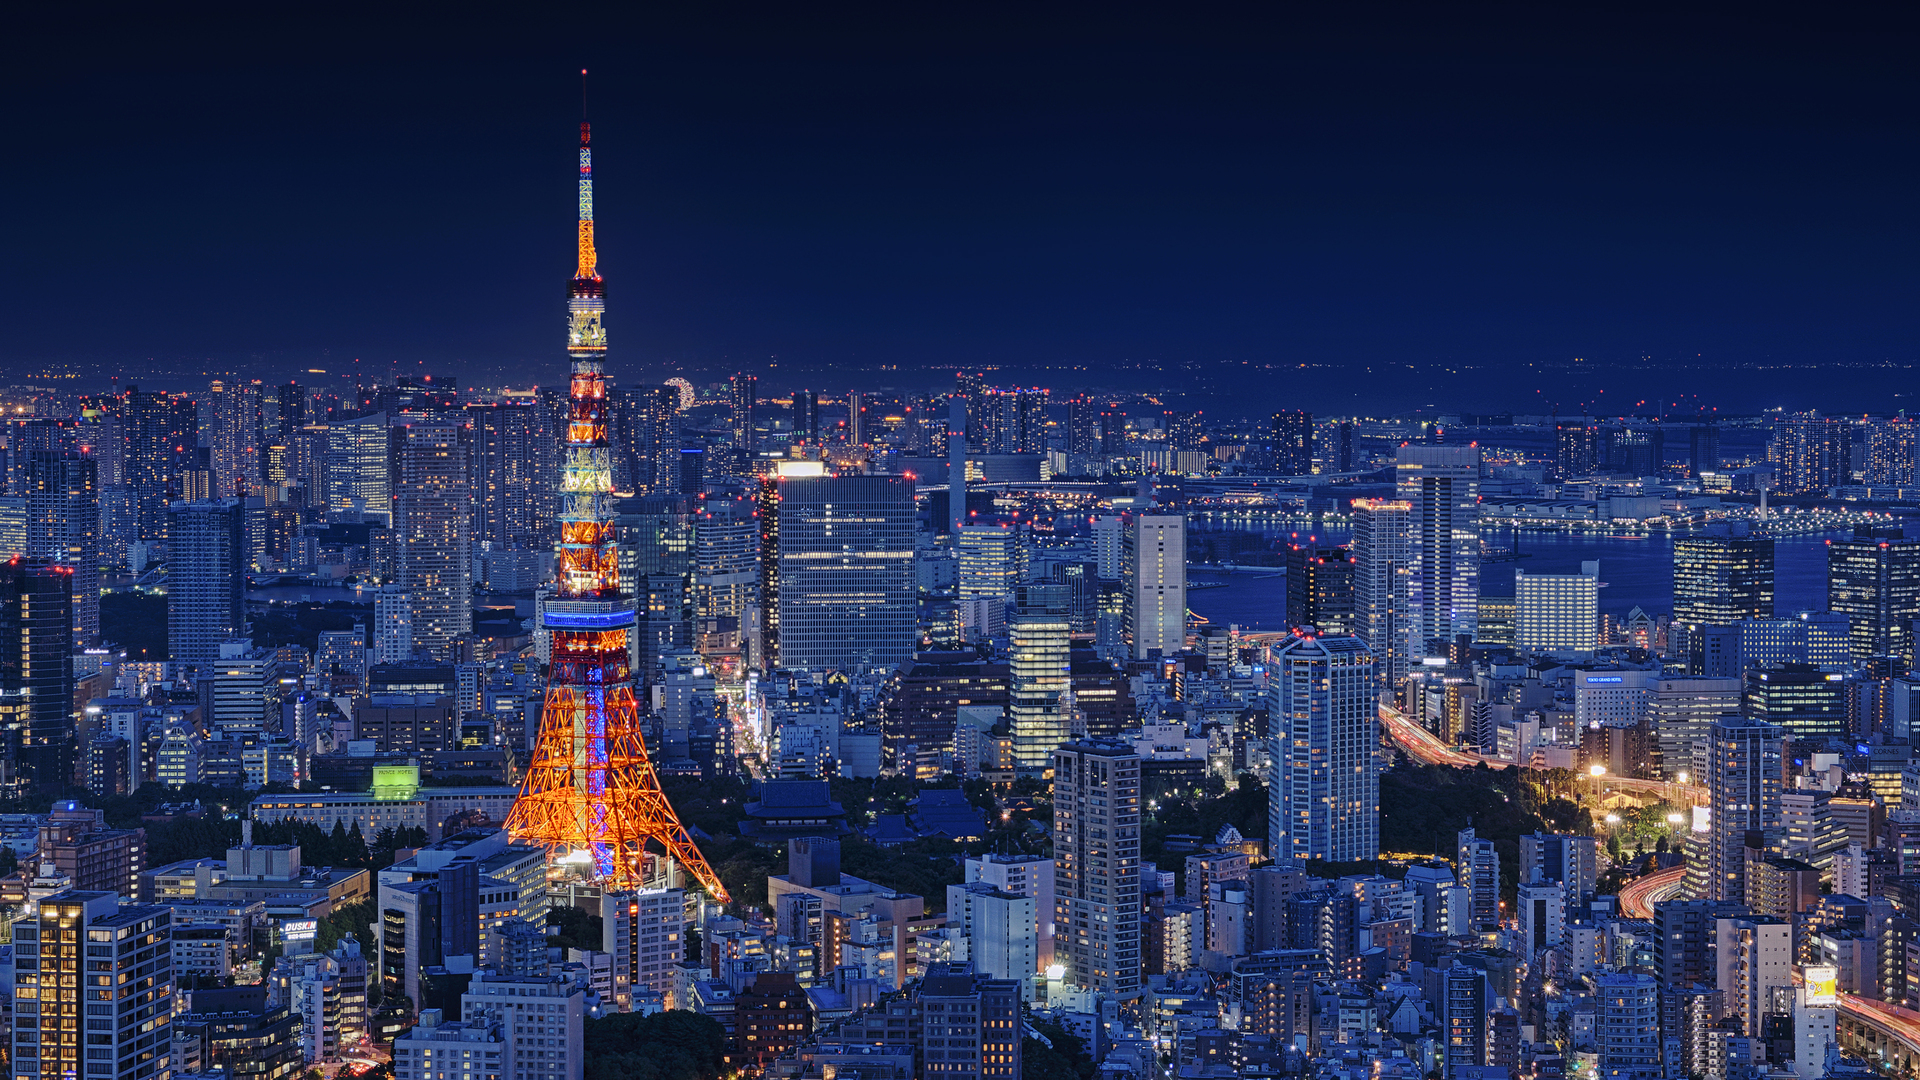 1920x1080 tokyo tower 4k laptop full hd 1080p hd 4k wallpapers images backgrounds photos and - Tokyo japan wallpaper ...